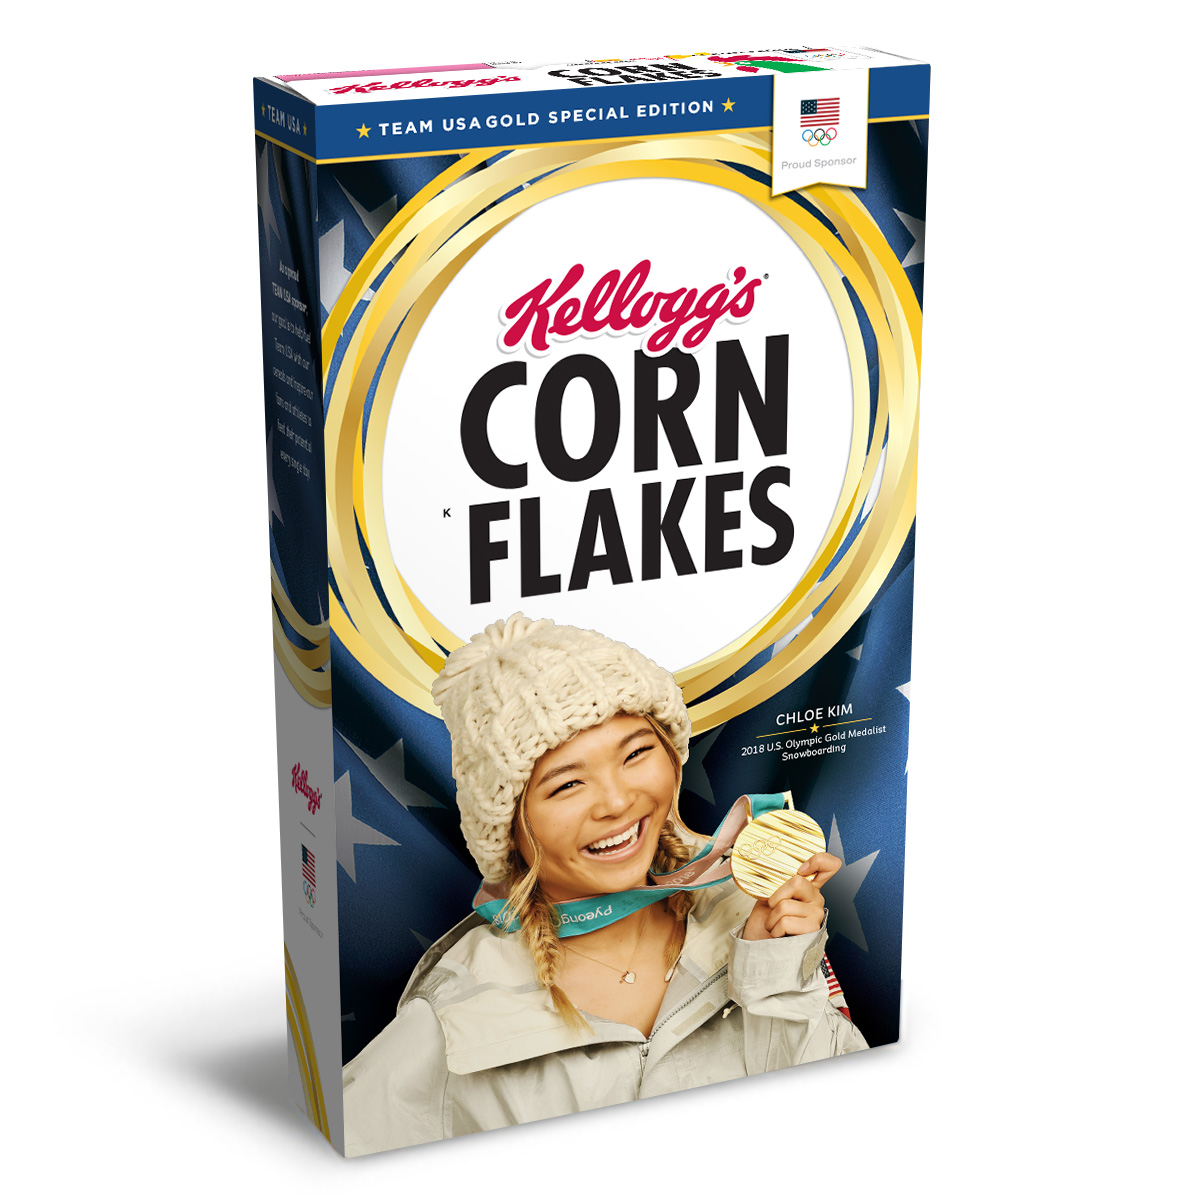 Chloe Kim's Gold Medal Edition Kellogg's® Corn Flakes® Box